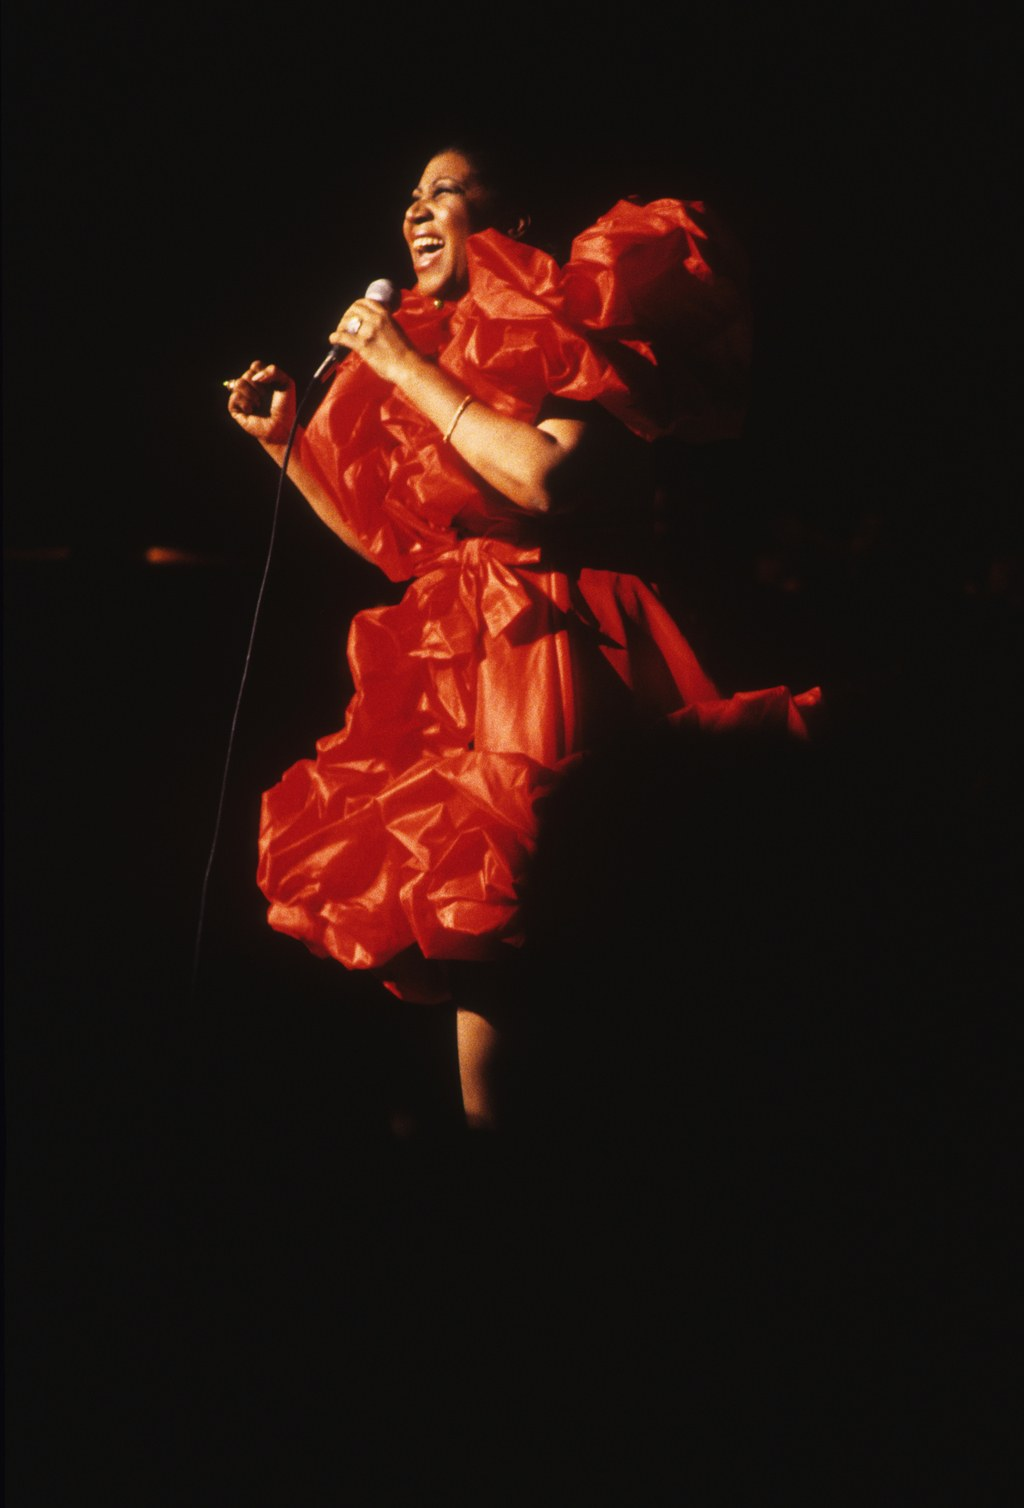 Aretha Franklin wears a red structured ball gown in her performance in 1992 (Getty Images)